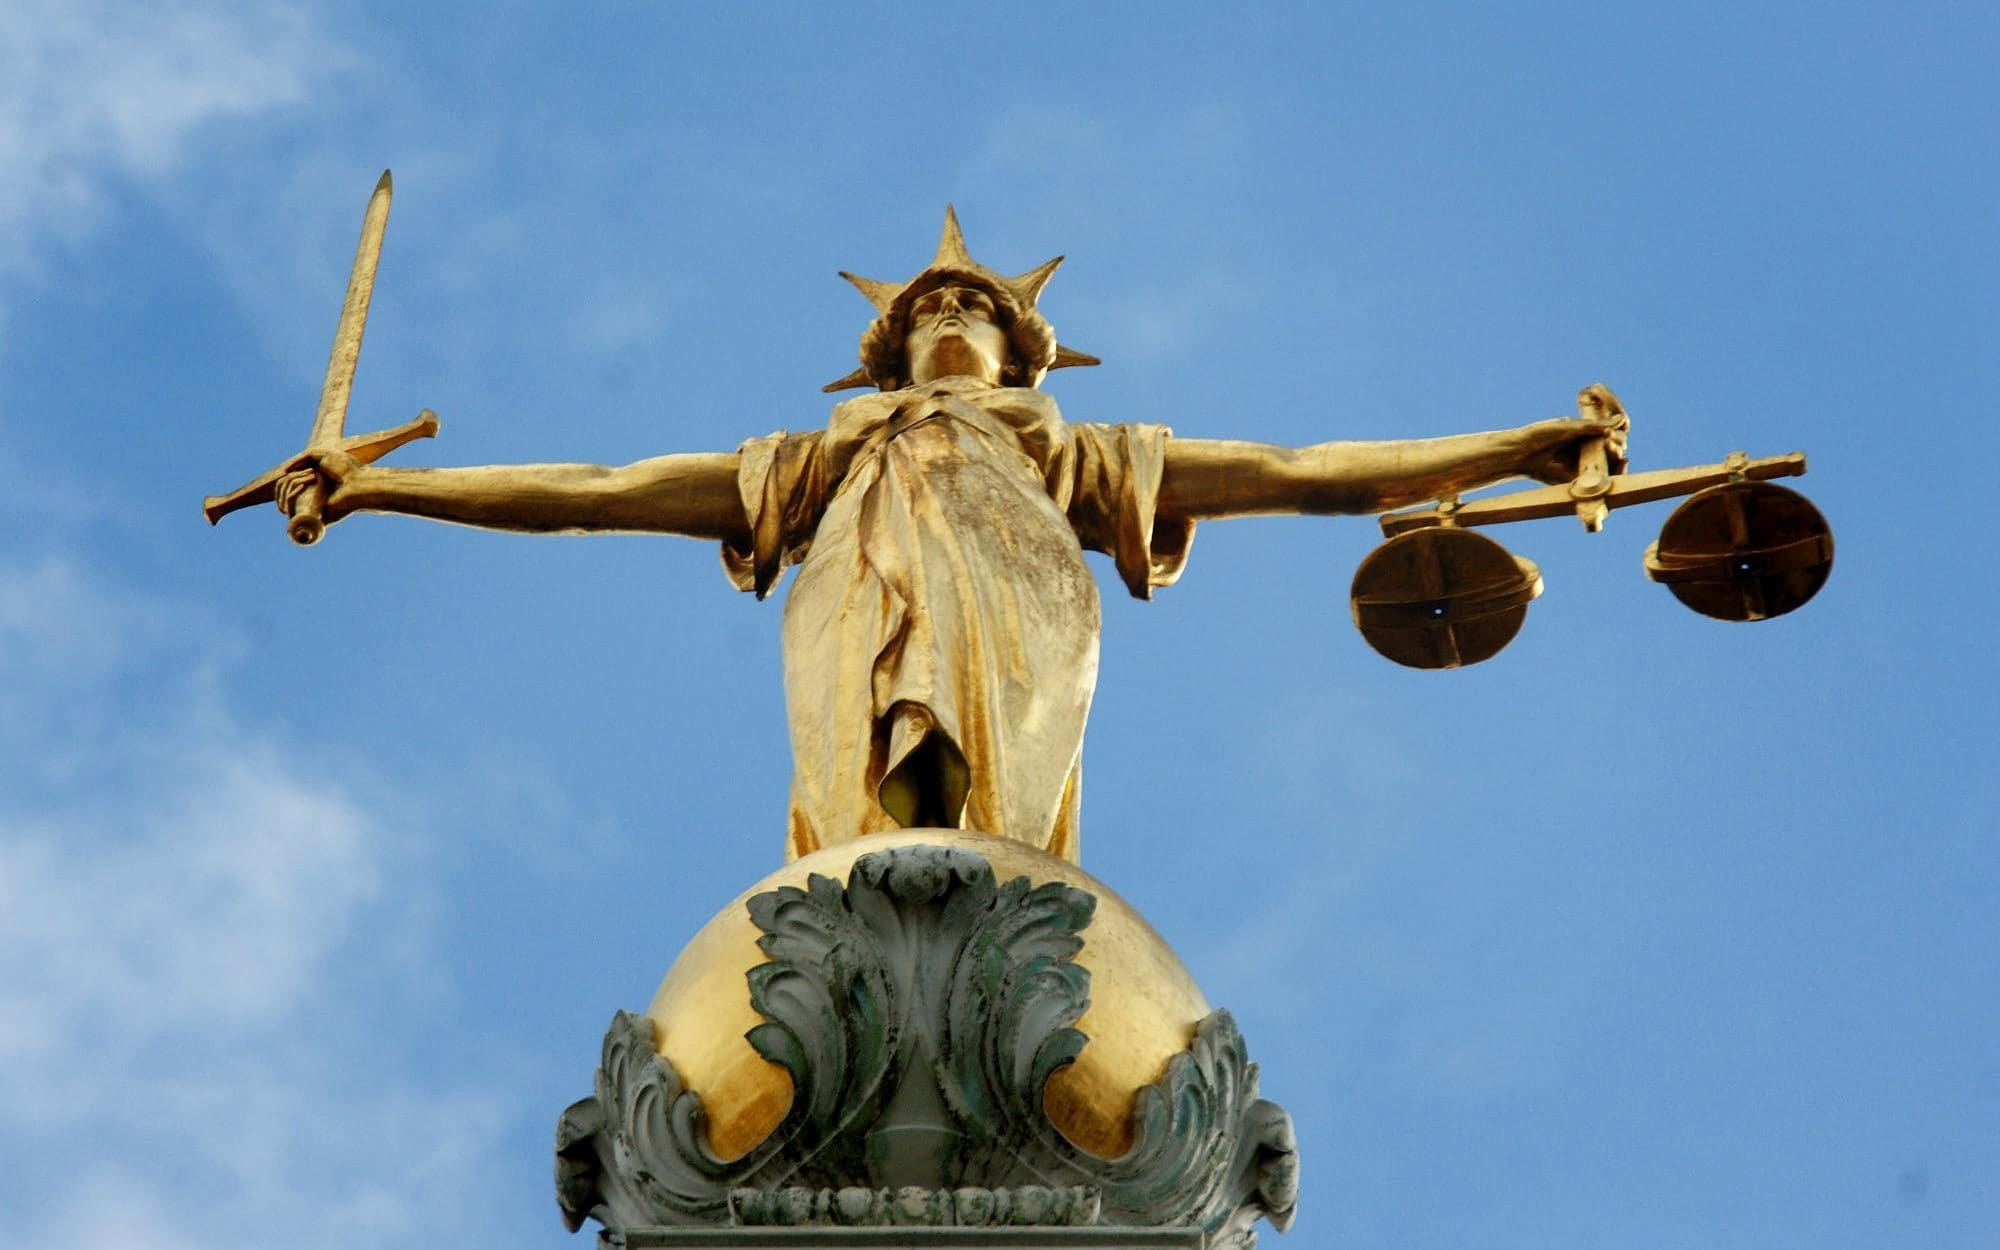 Drug dealer spared jail after telling judge his baldness had ruined his life